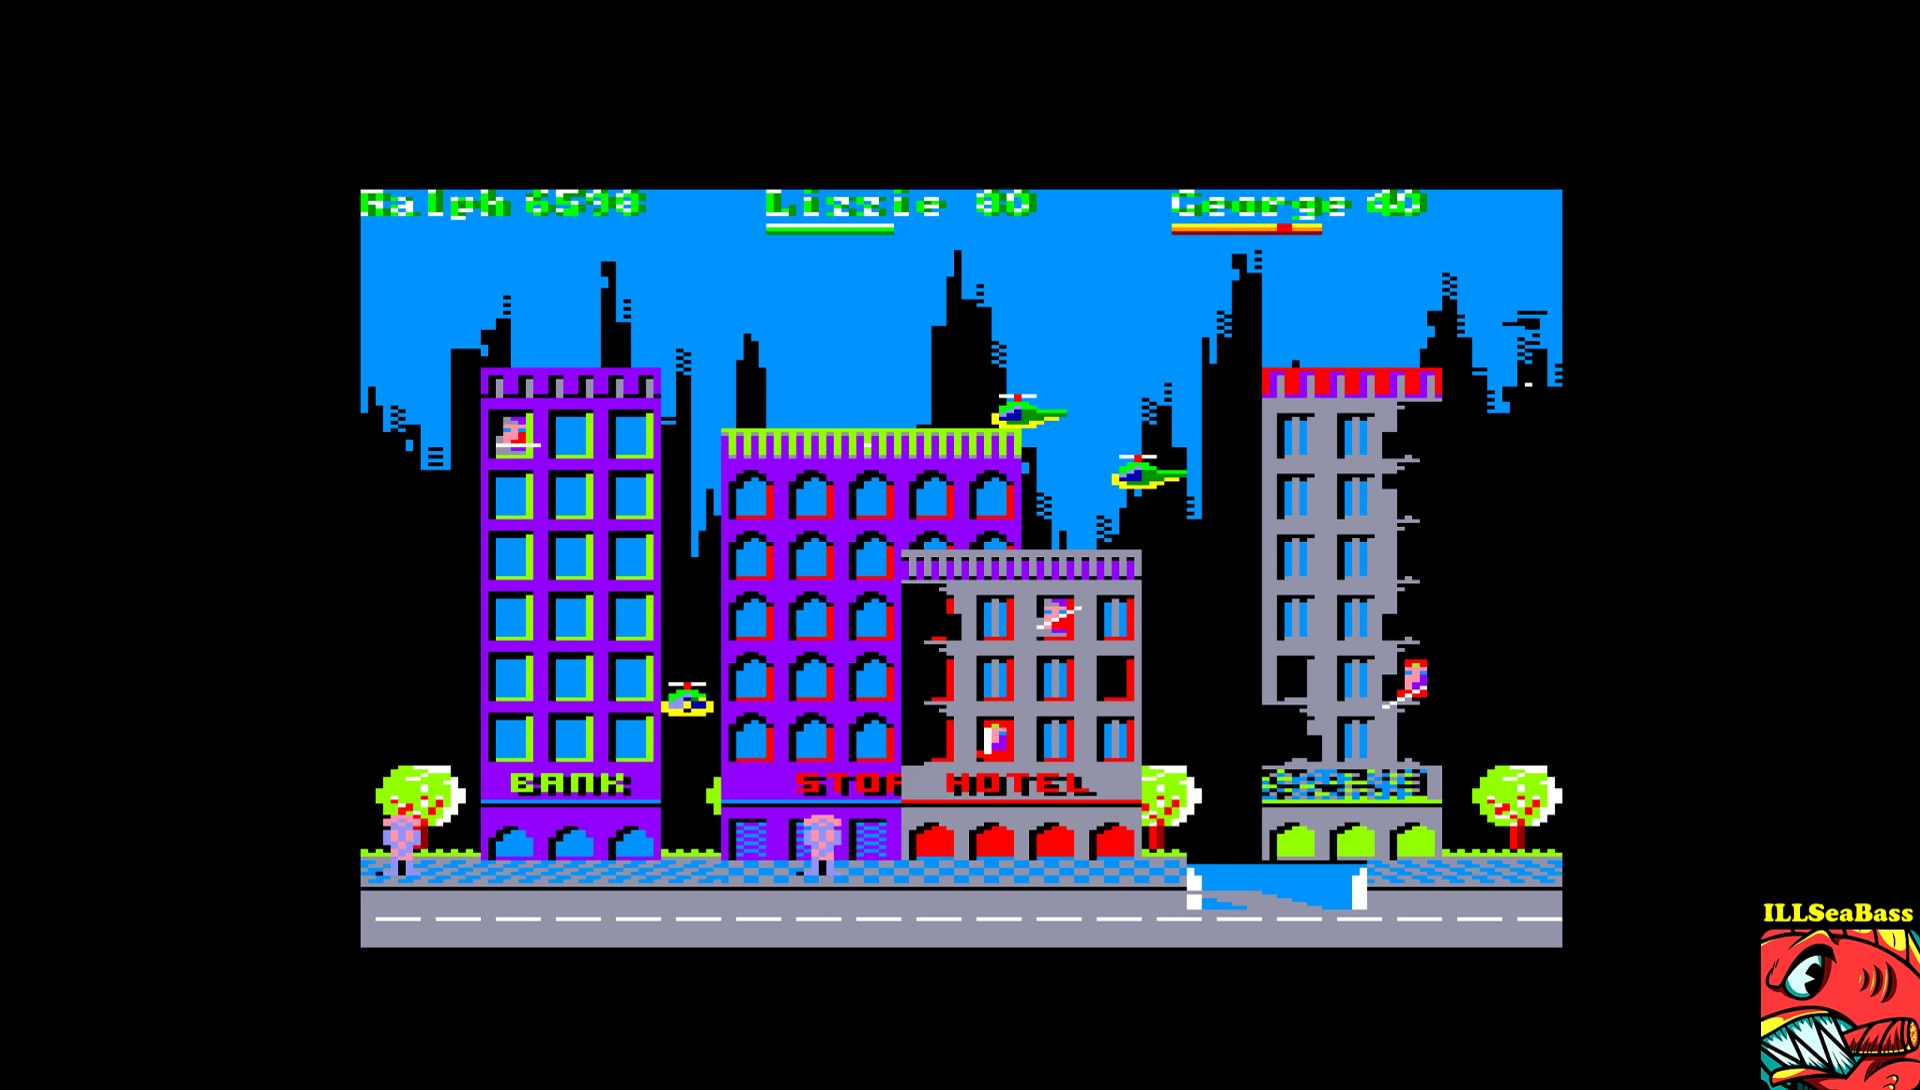 ILLSeaBass: Rampage (Amstrad CPC Emulated) 6,598 points on 2017-03-01 00:48:09